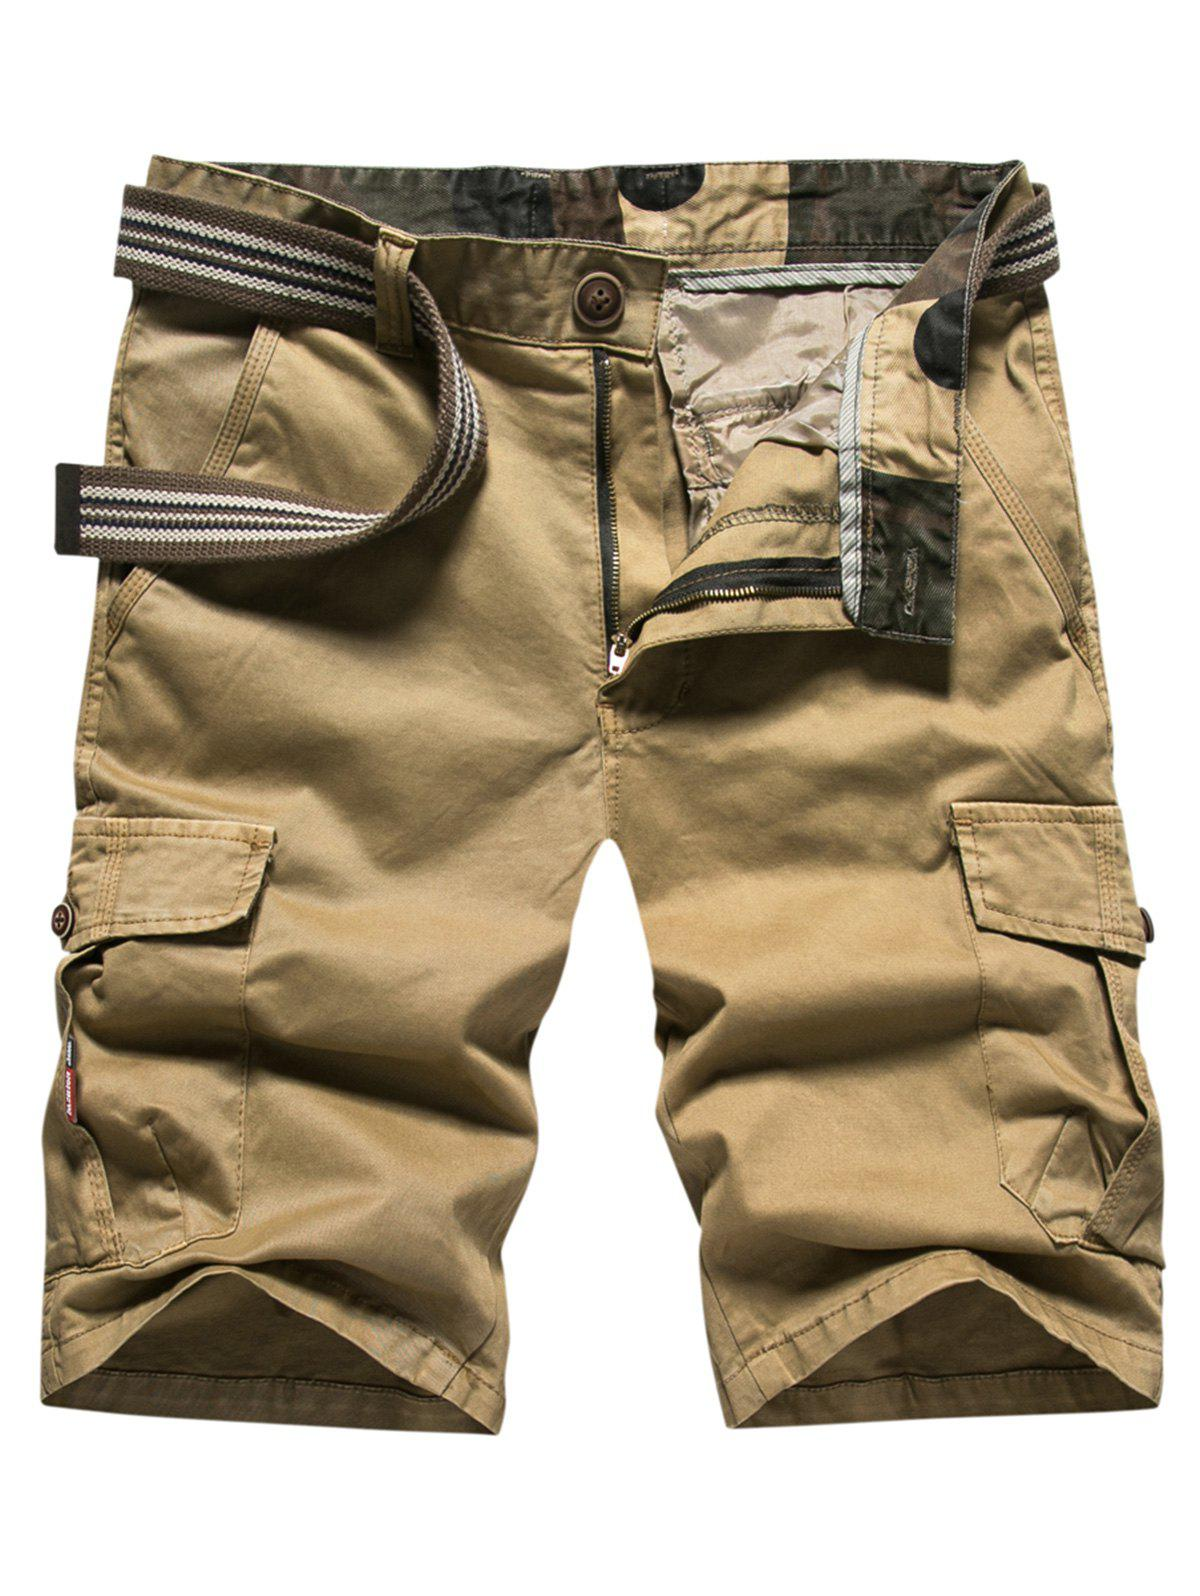 Store Loose-fitting Casual Cargo Shorts